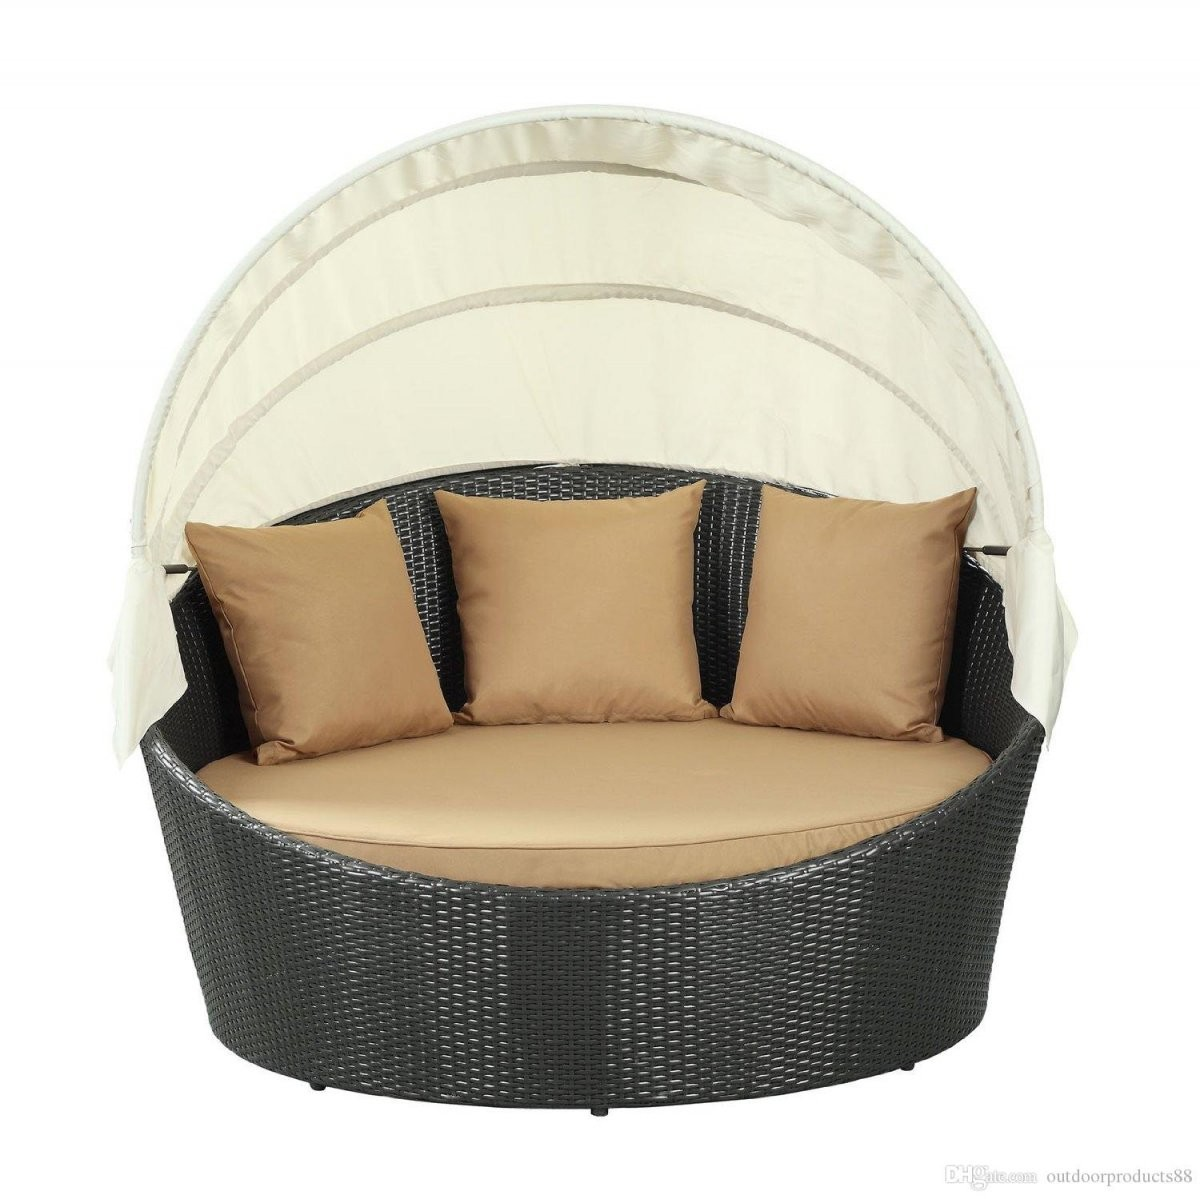 Round Swing Bed Round Rattan Swing Bed Porch And Garden – Title von Round Rattan Swing Bed Bild